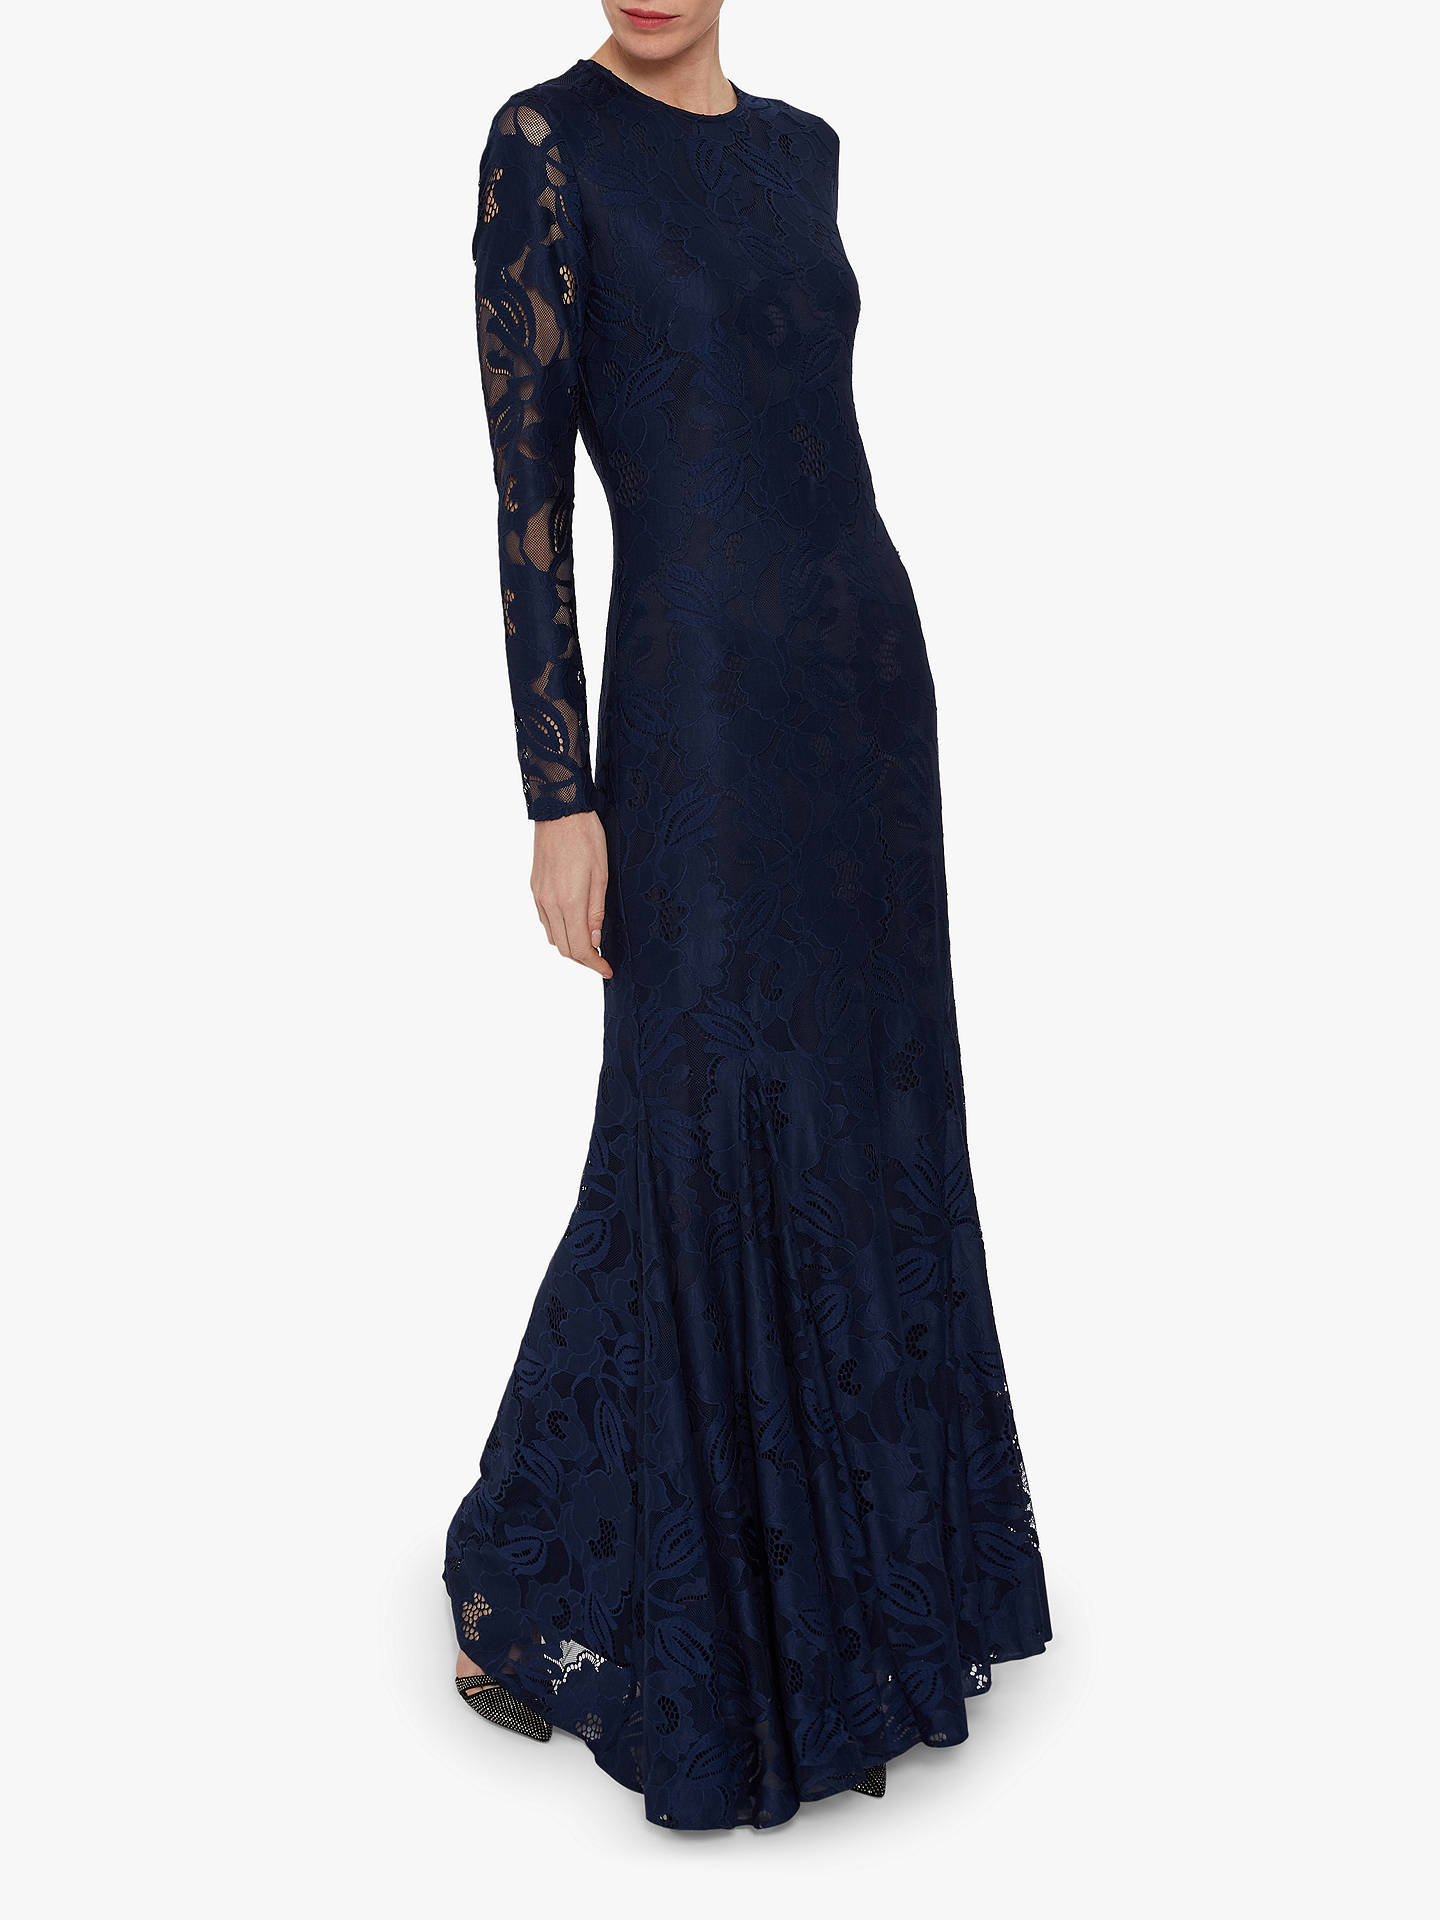 Buy Gina Bacconi April Stretch Lace Maxi Dress, Navy, 12 Online at johnlewis.com